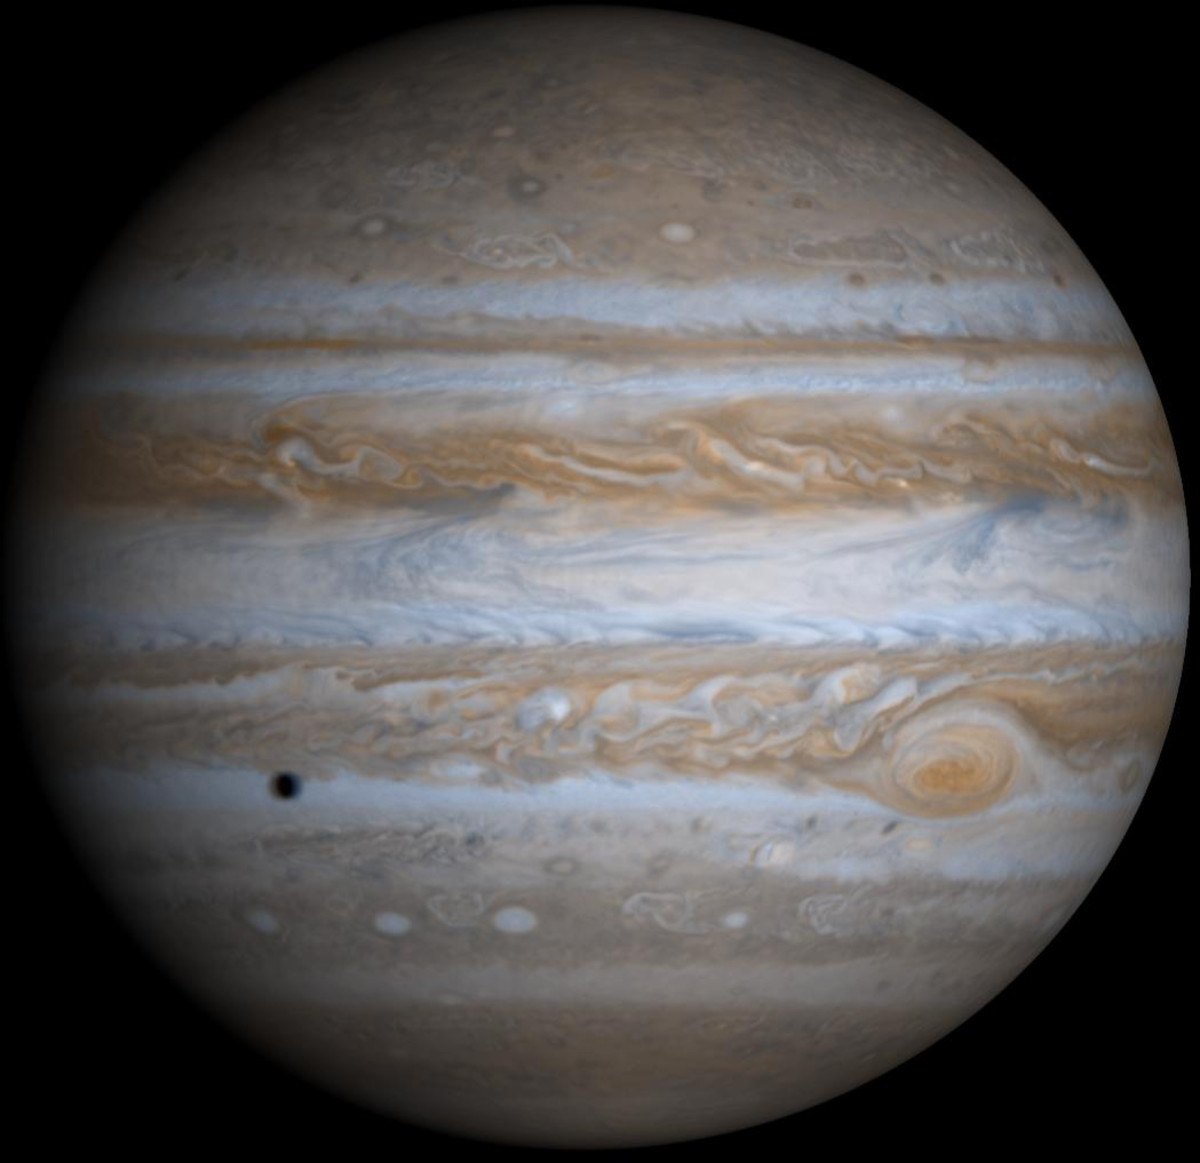 True-color photo from Cassini wrapped on globe by JPL imaging. Yes, Jupiter really is that fat. It spins incredibly fast. (The black spot is the shadow of one of its moons.)